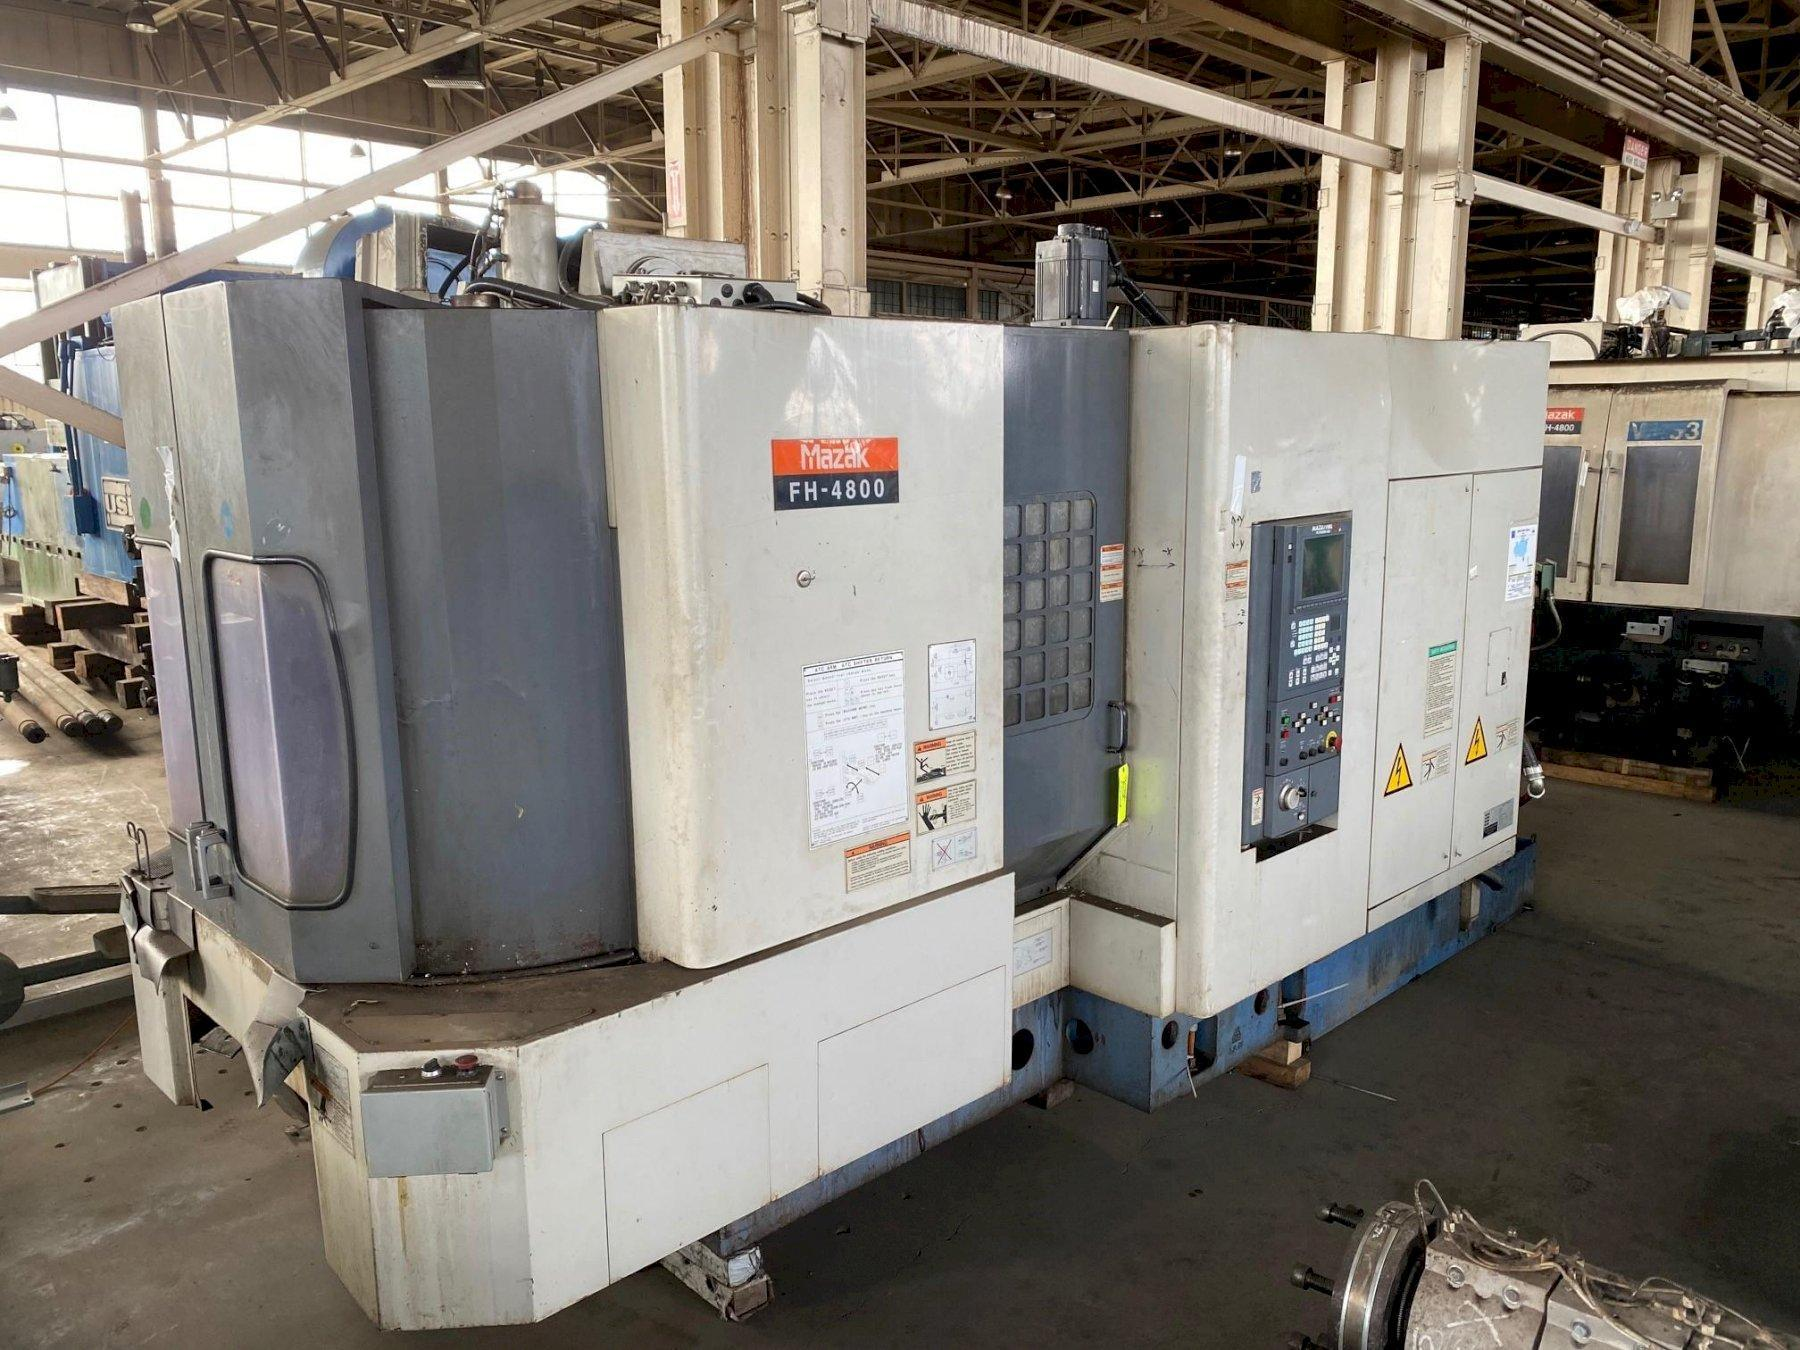 Mazak FH-4800 CNC Horizontal Machining Center